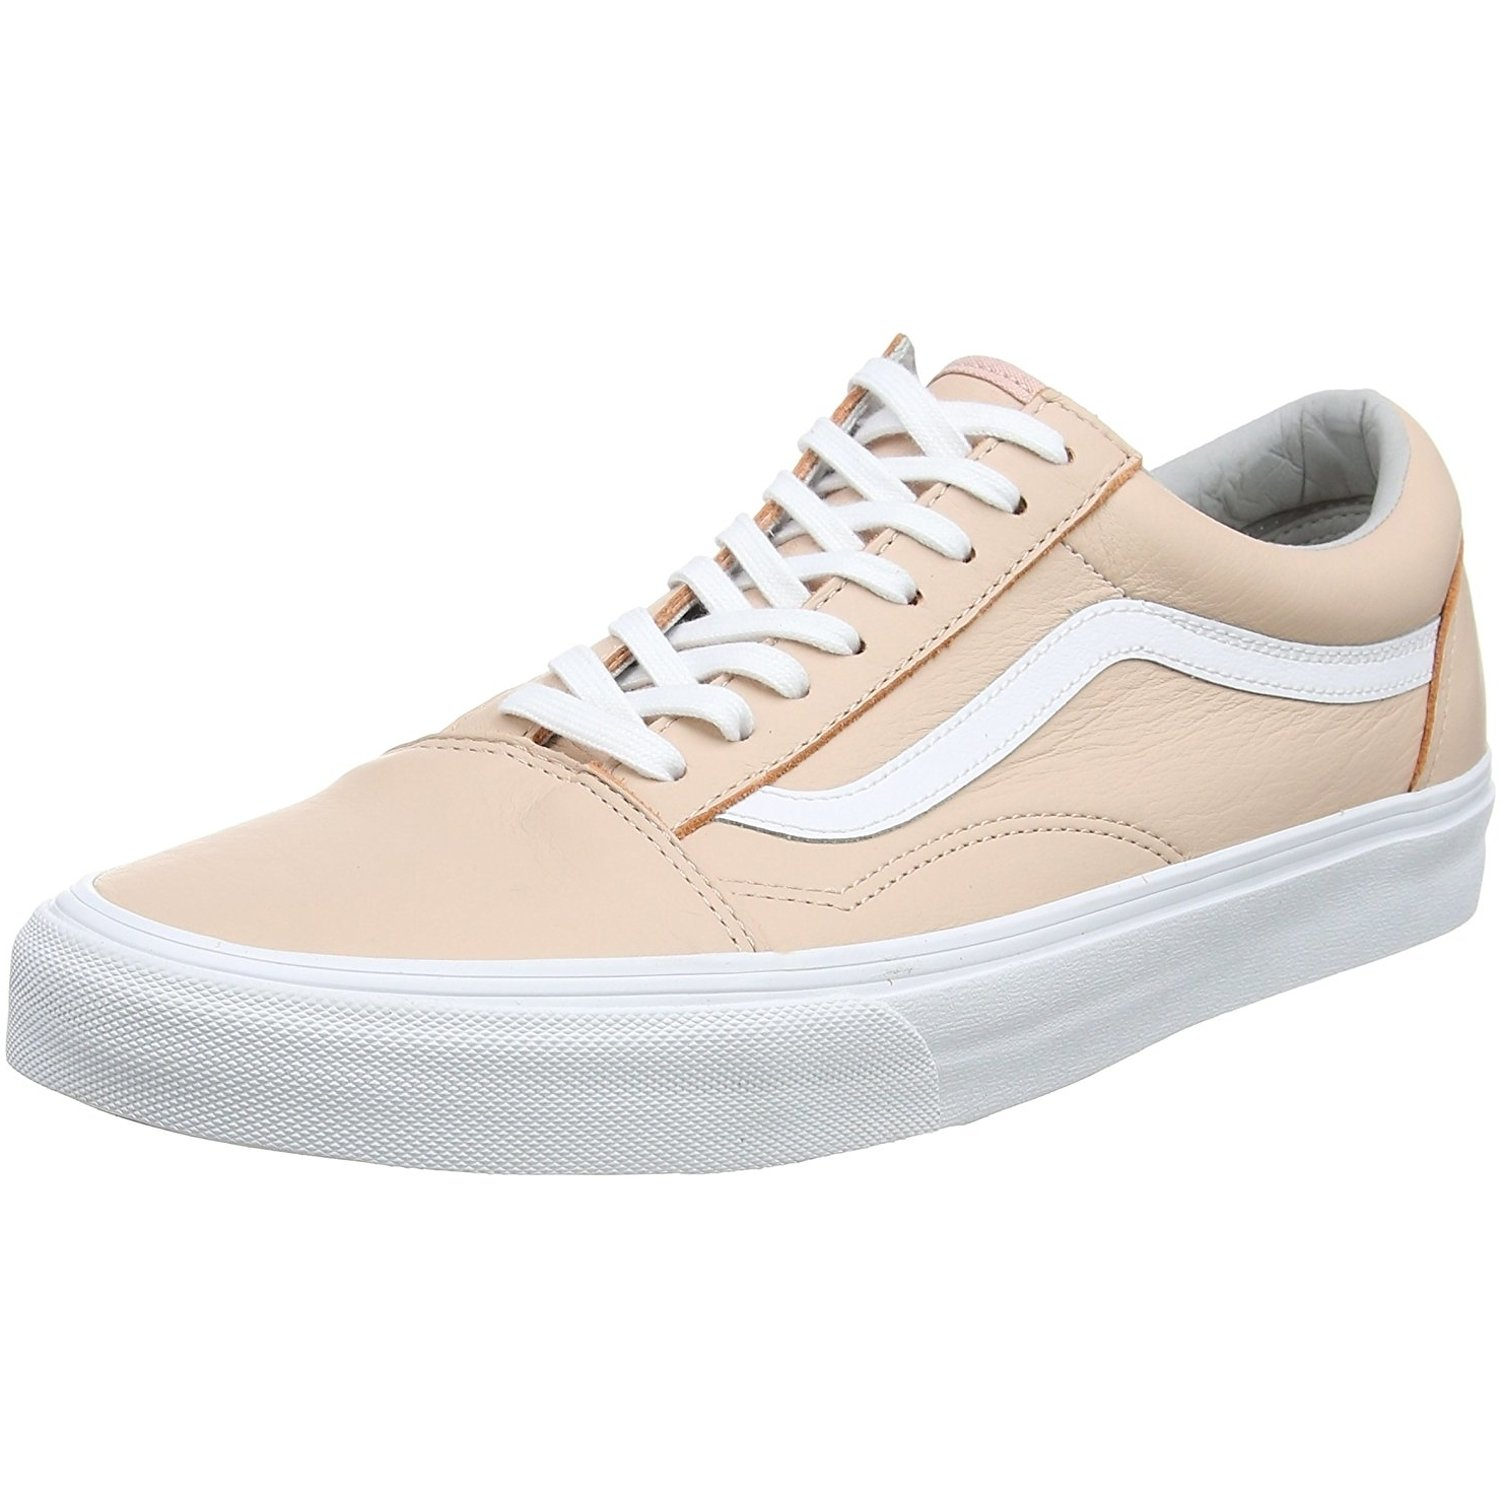 Vans UA Old Skool Evening Sand Leather 6.5 D(M) US Men / 8 B(M) US Women